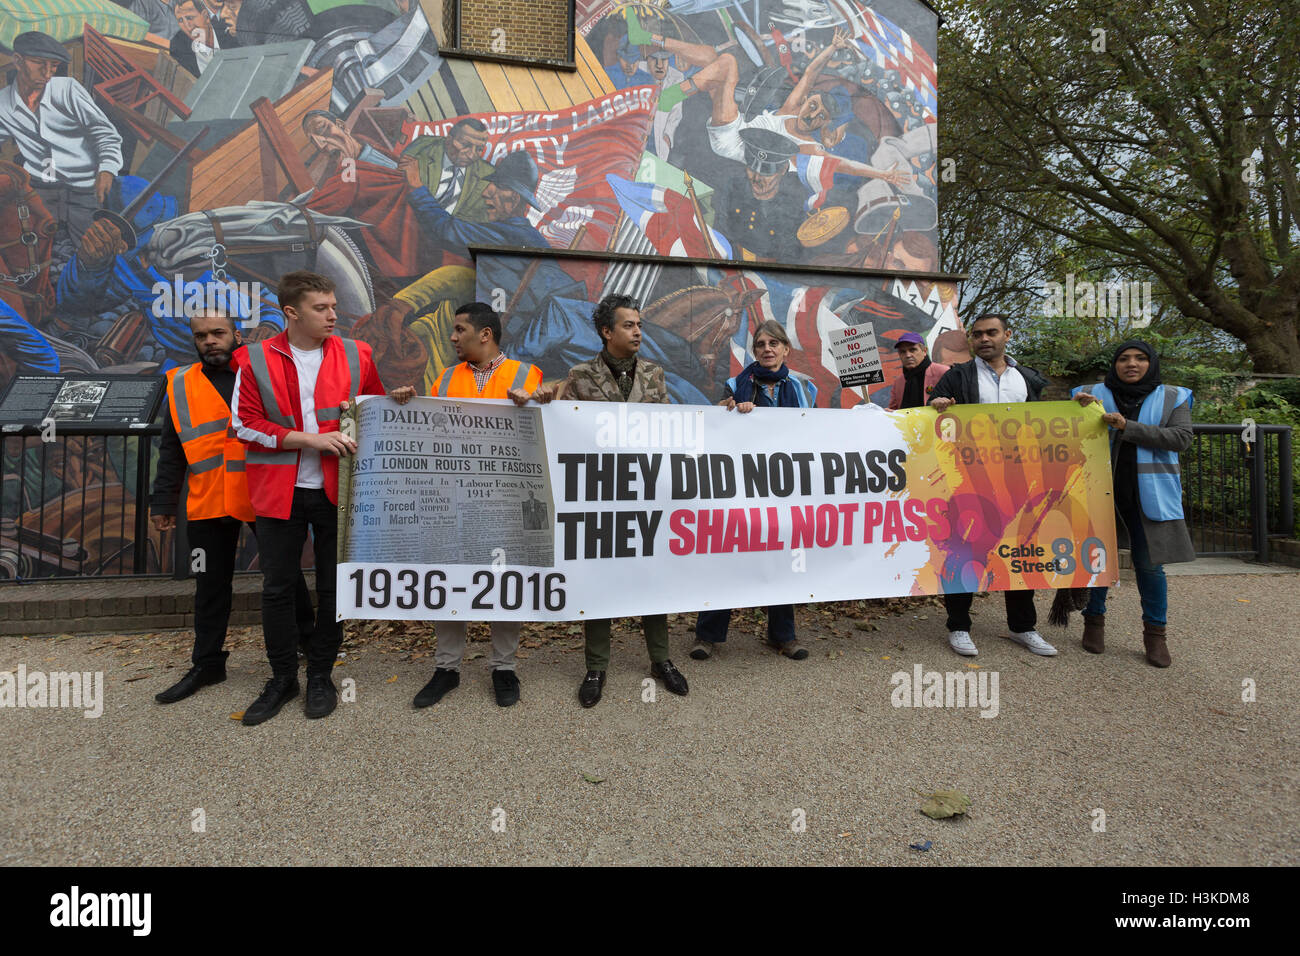 London, UK. 9th October 2016. Socialists, Trade Unionists, Jewish and anti racism groups protest at the Cable Street - Stock Image